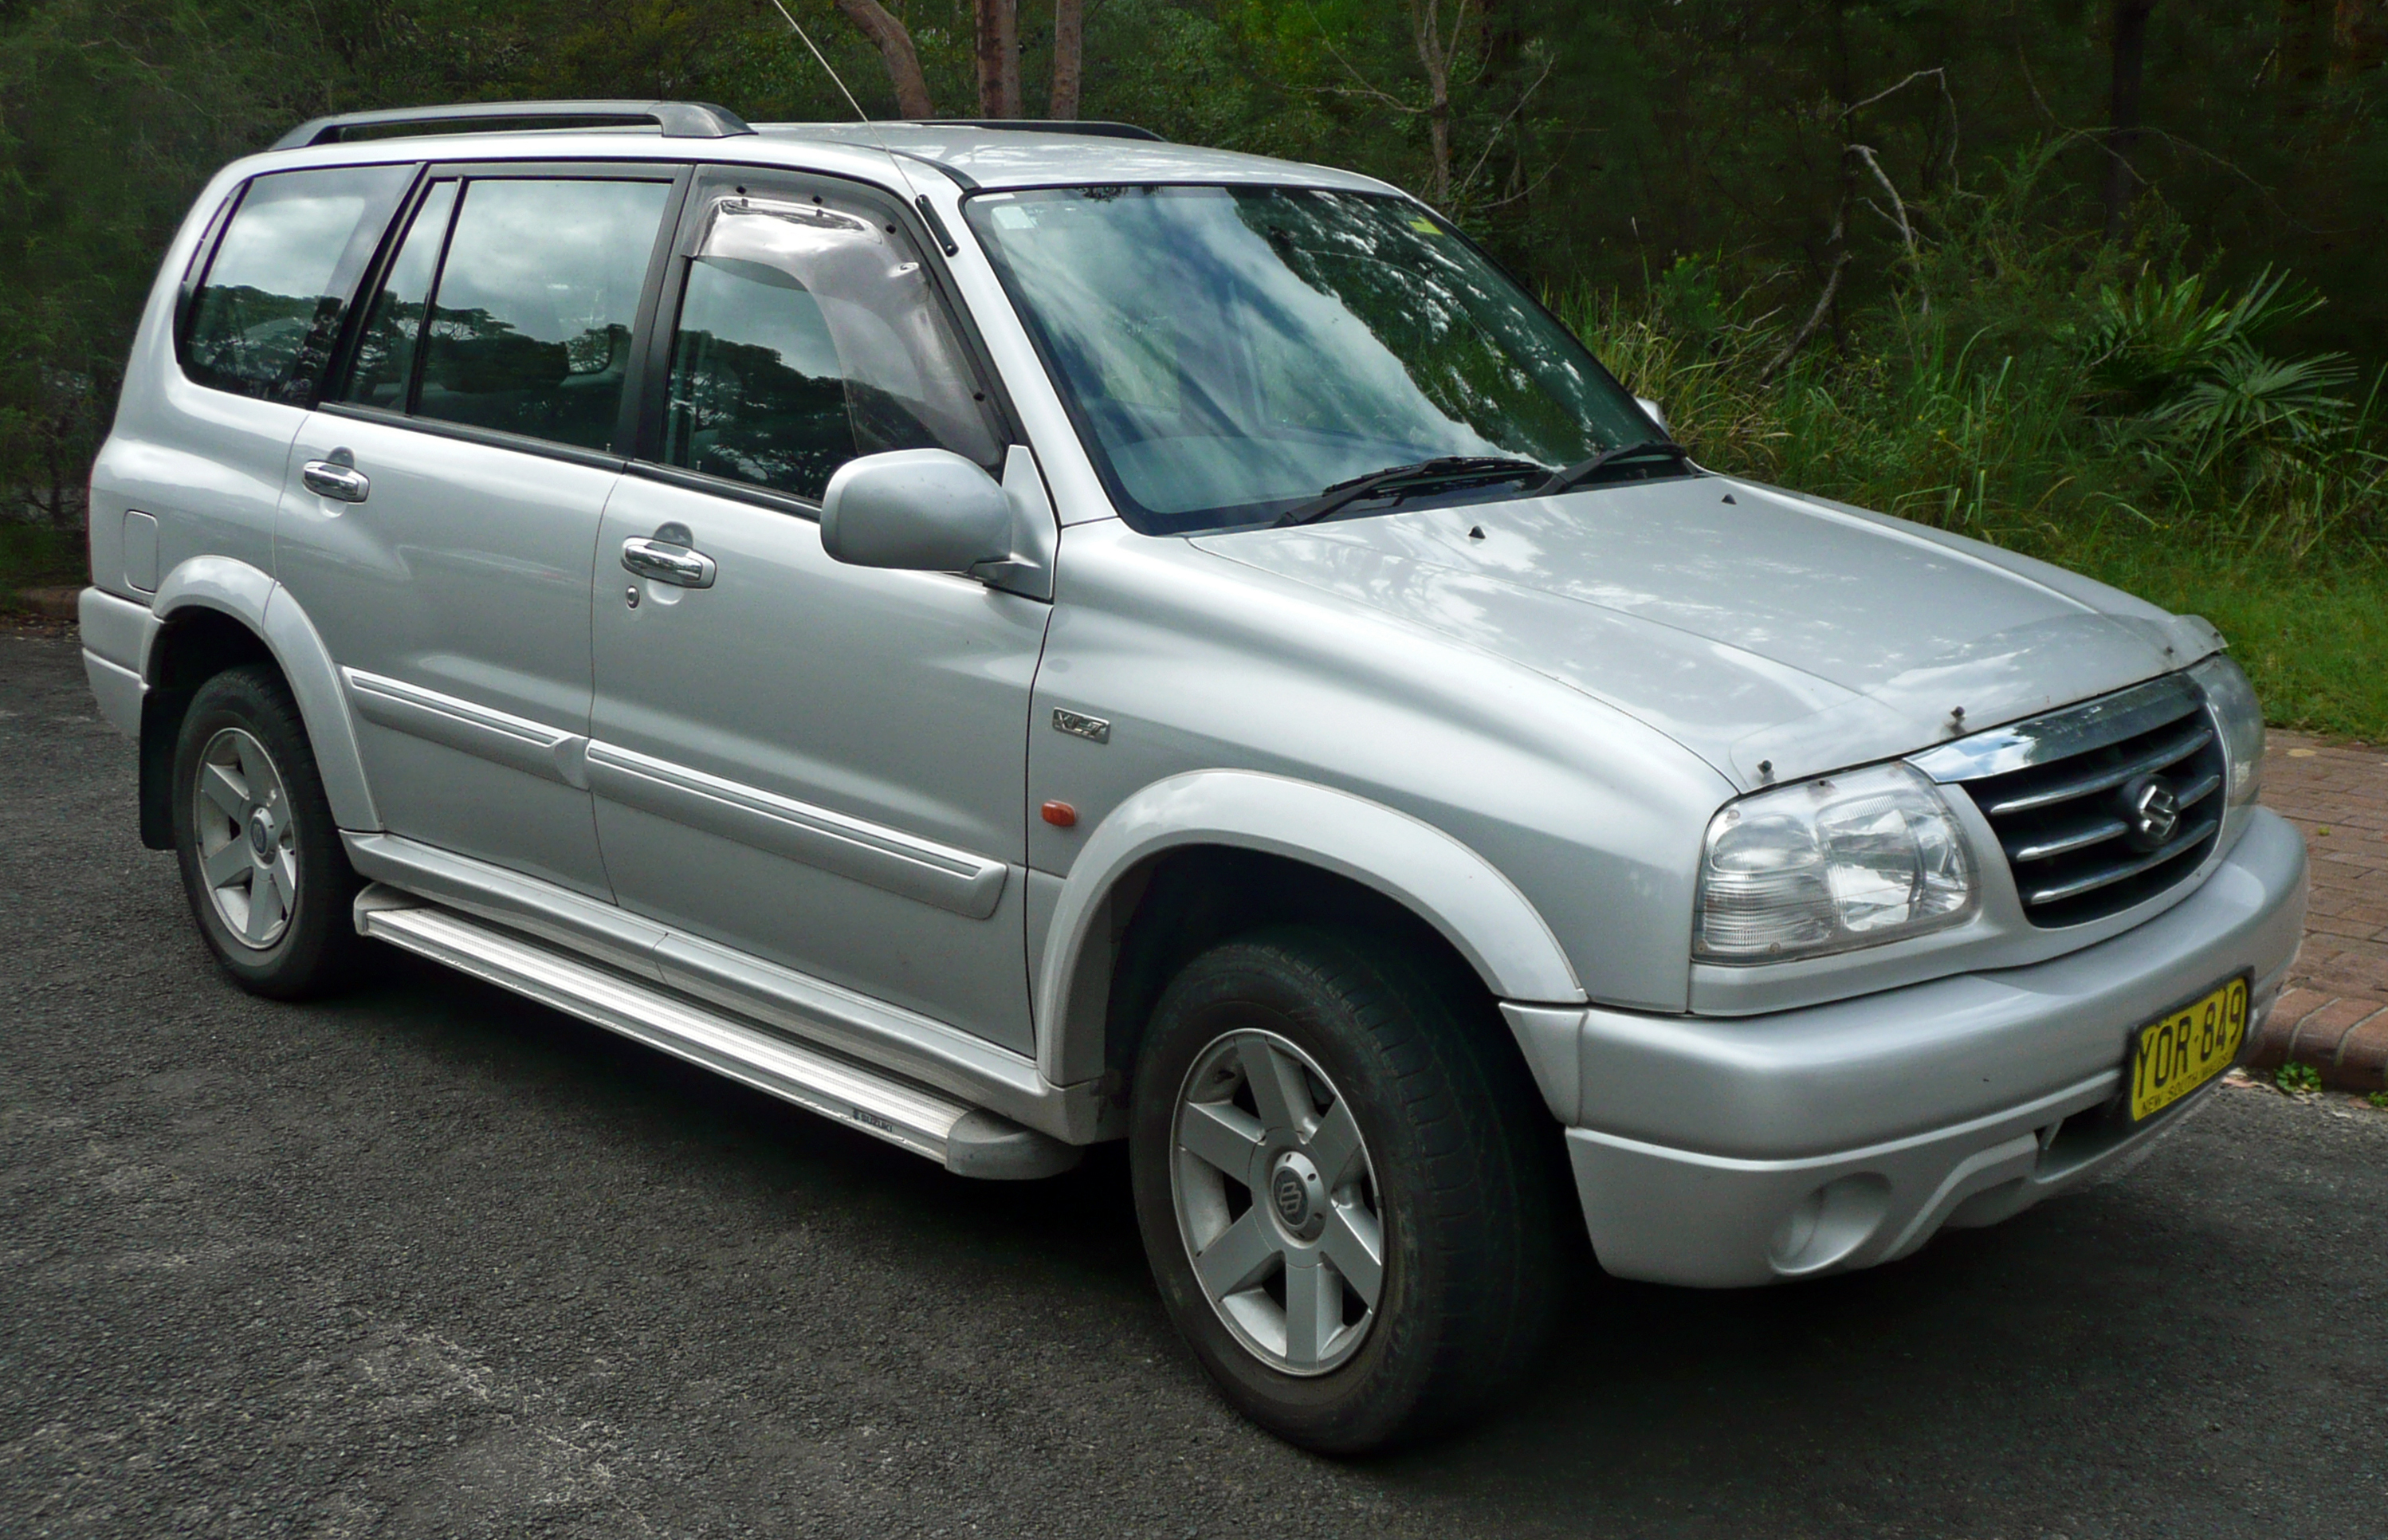 File:2001-2003 Suzuki Grand Vitara XL-7 (JA) wagon (2010-02-24) 01